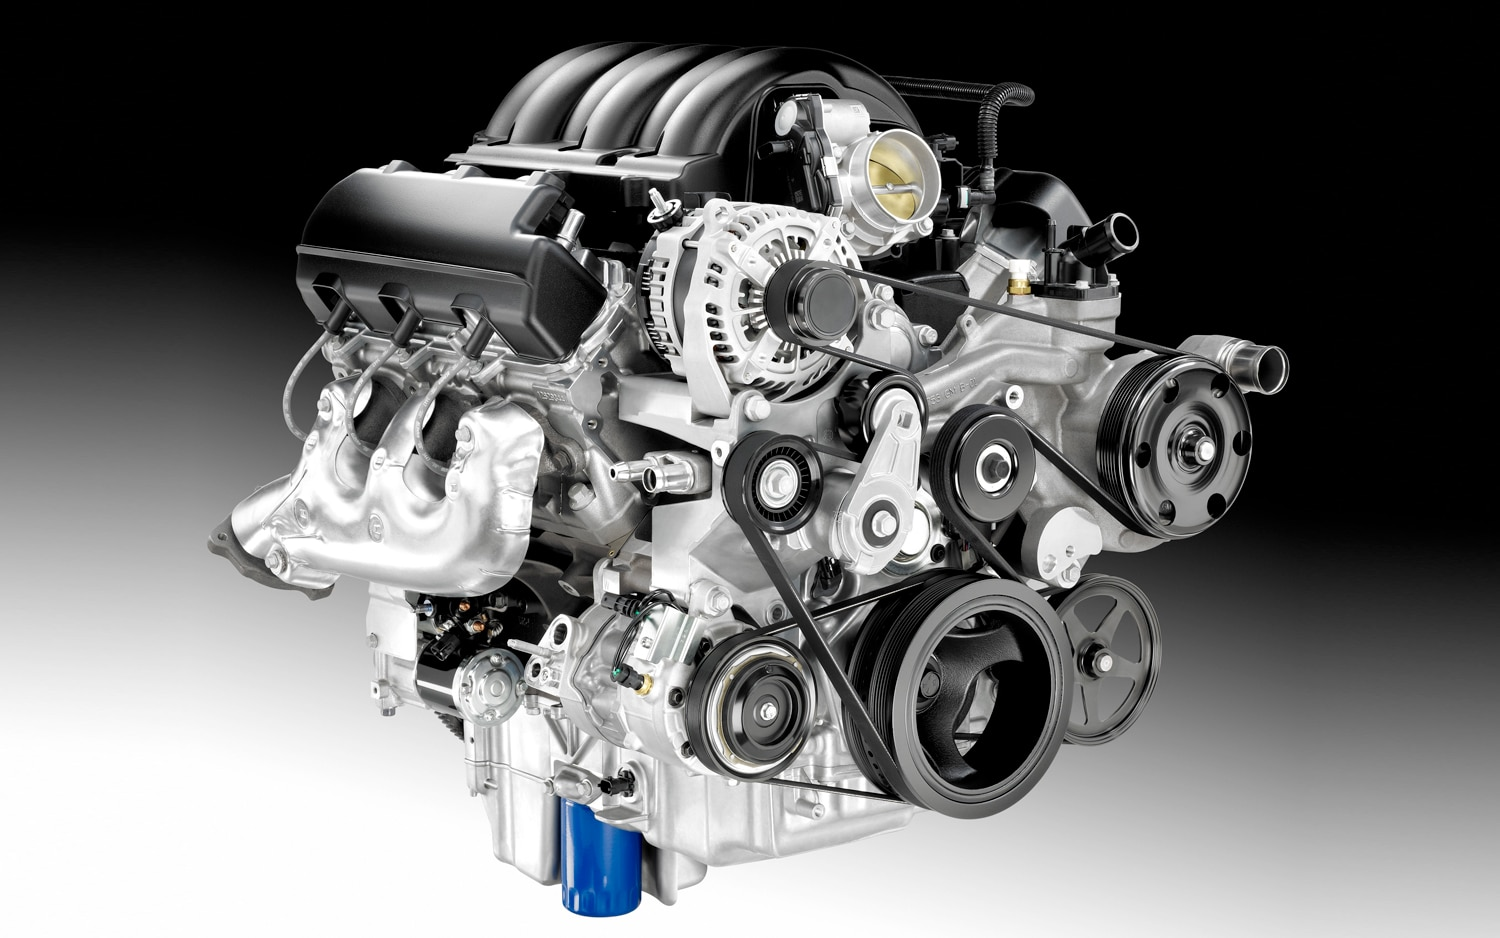 2014 Chevrolet Silverado V6 Engine